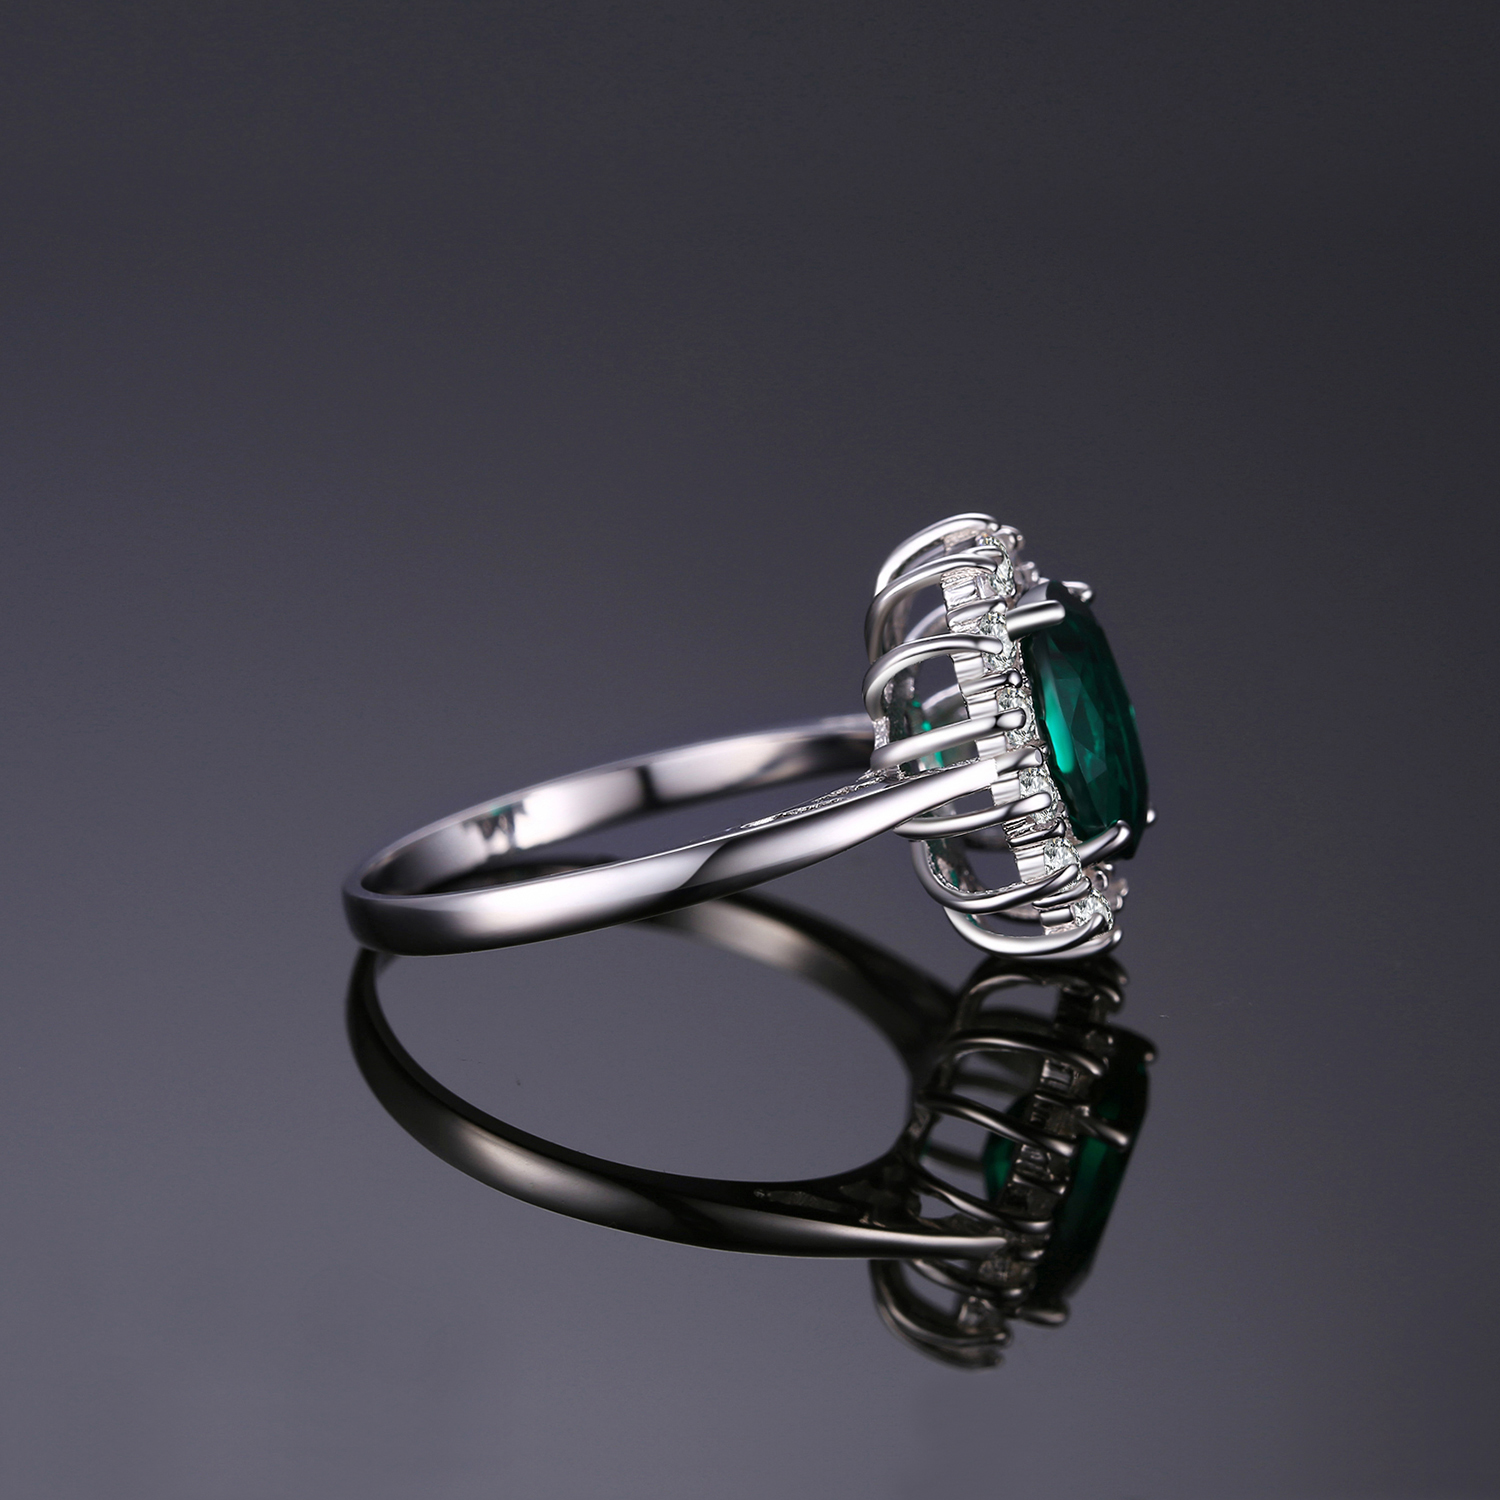 Princess Diana Simulated Emerald Ring 925 Sterling Silver Rings